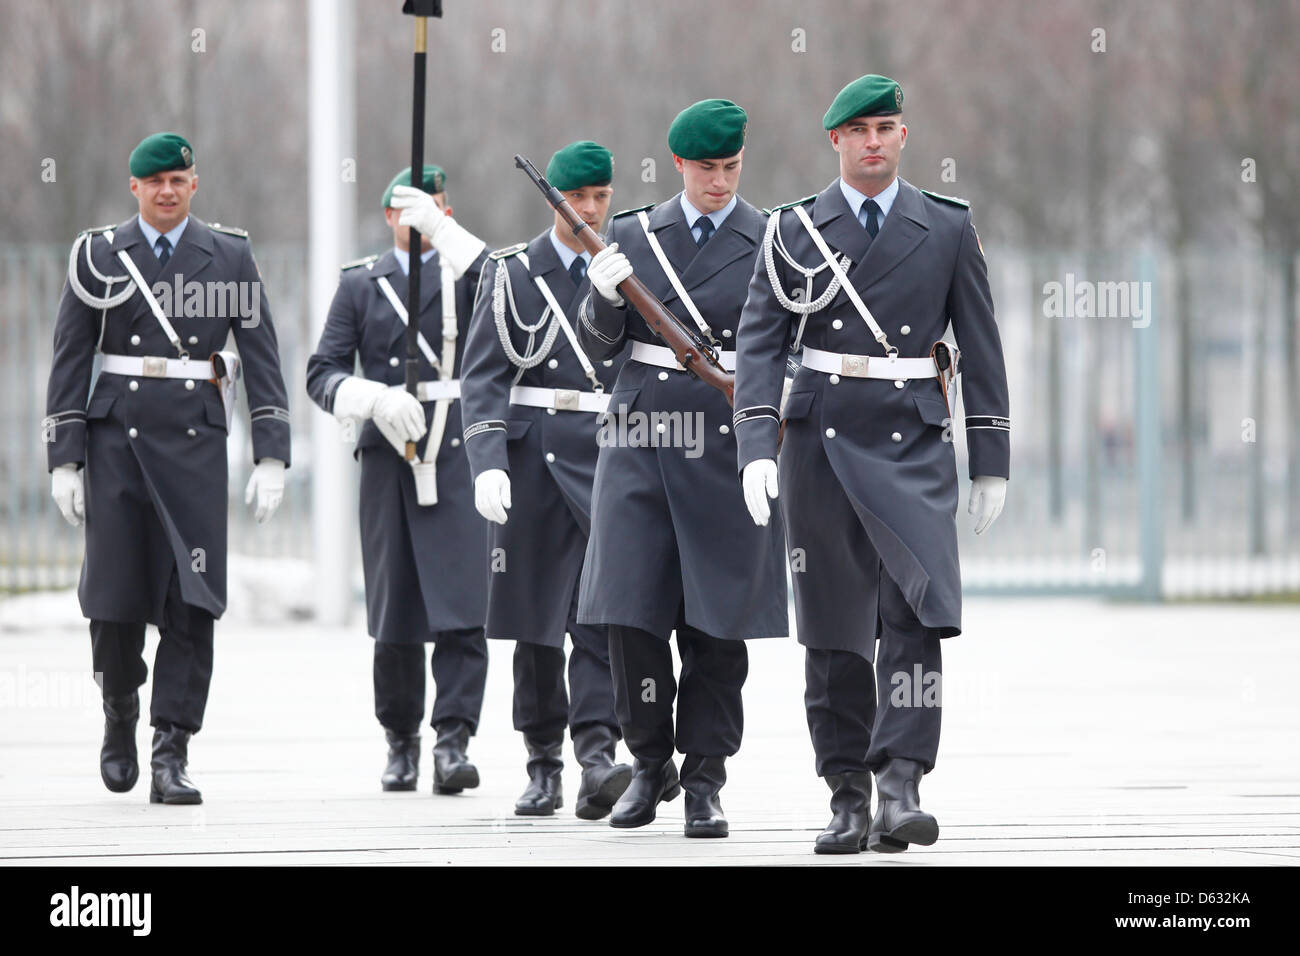 Berlin, Germany. 11th April 2013. Greeting of the Indian Prime Minister Manmohan Singh with military honours by - Stock Image